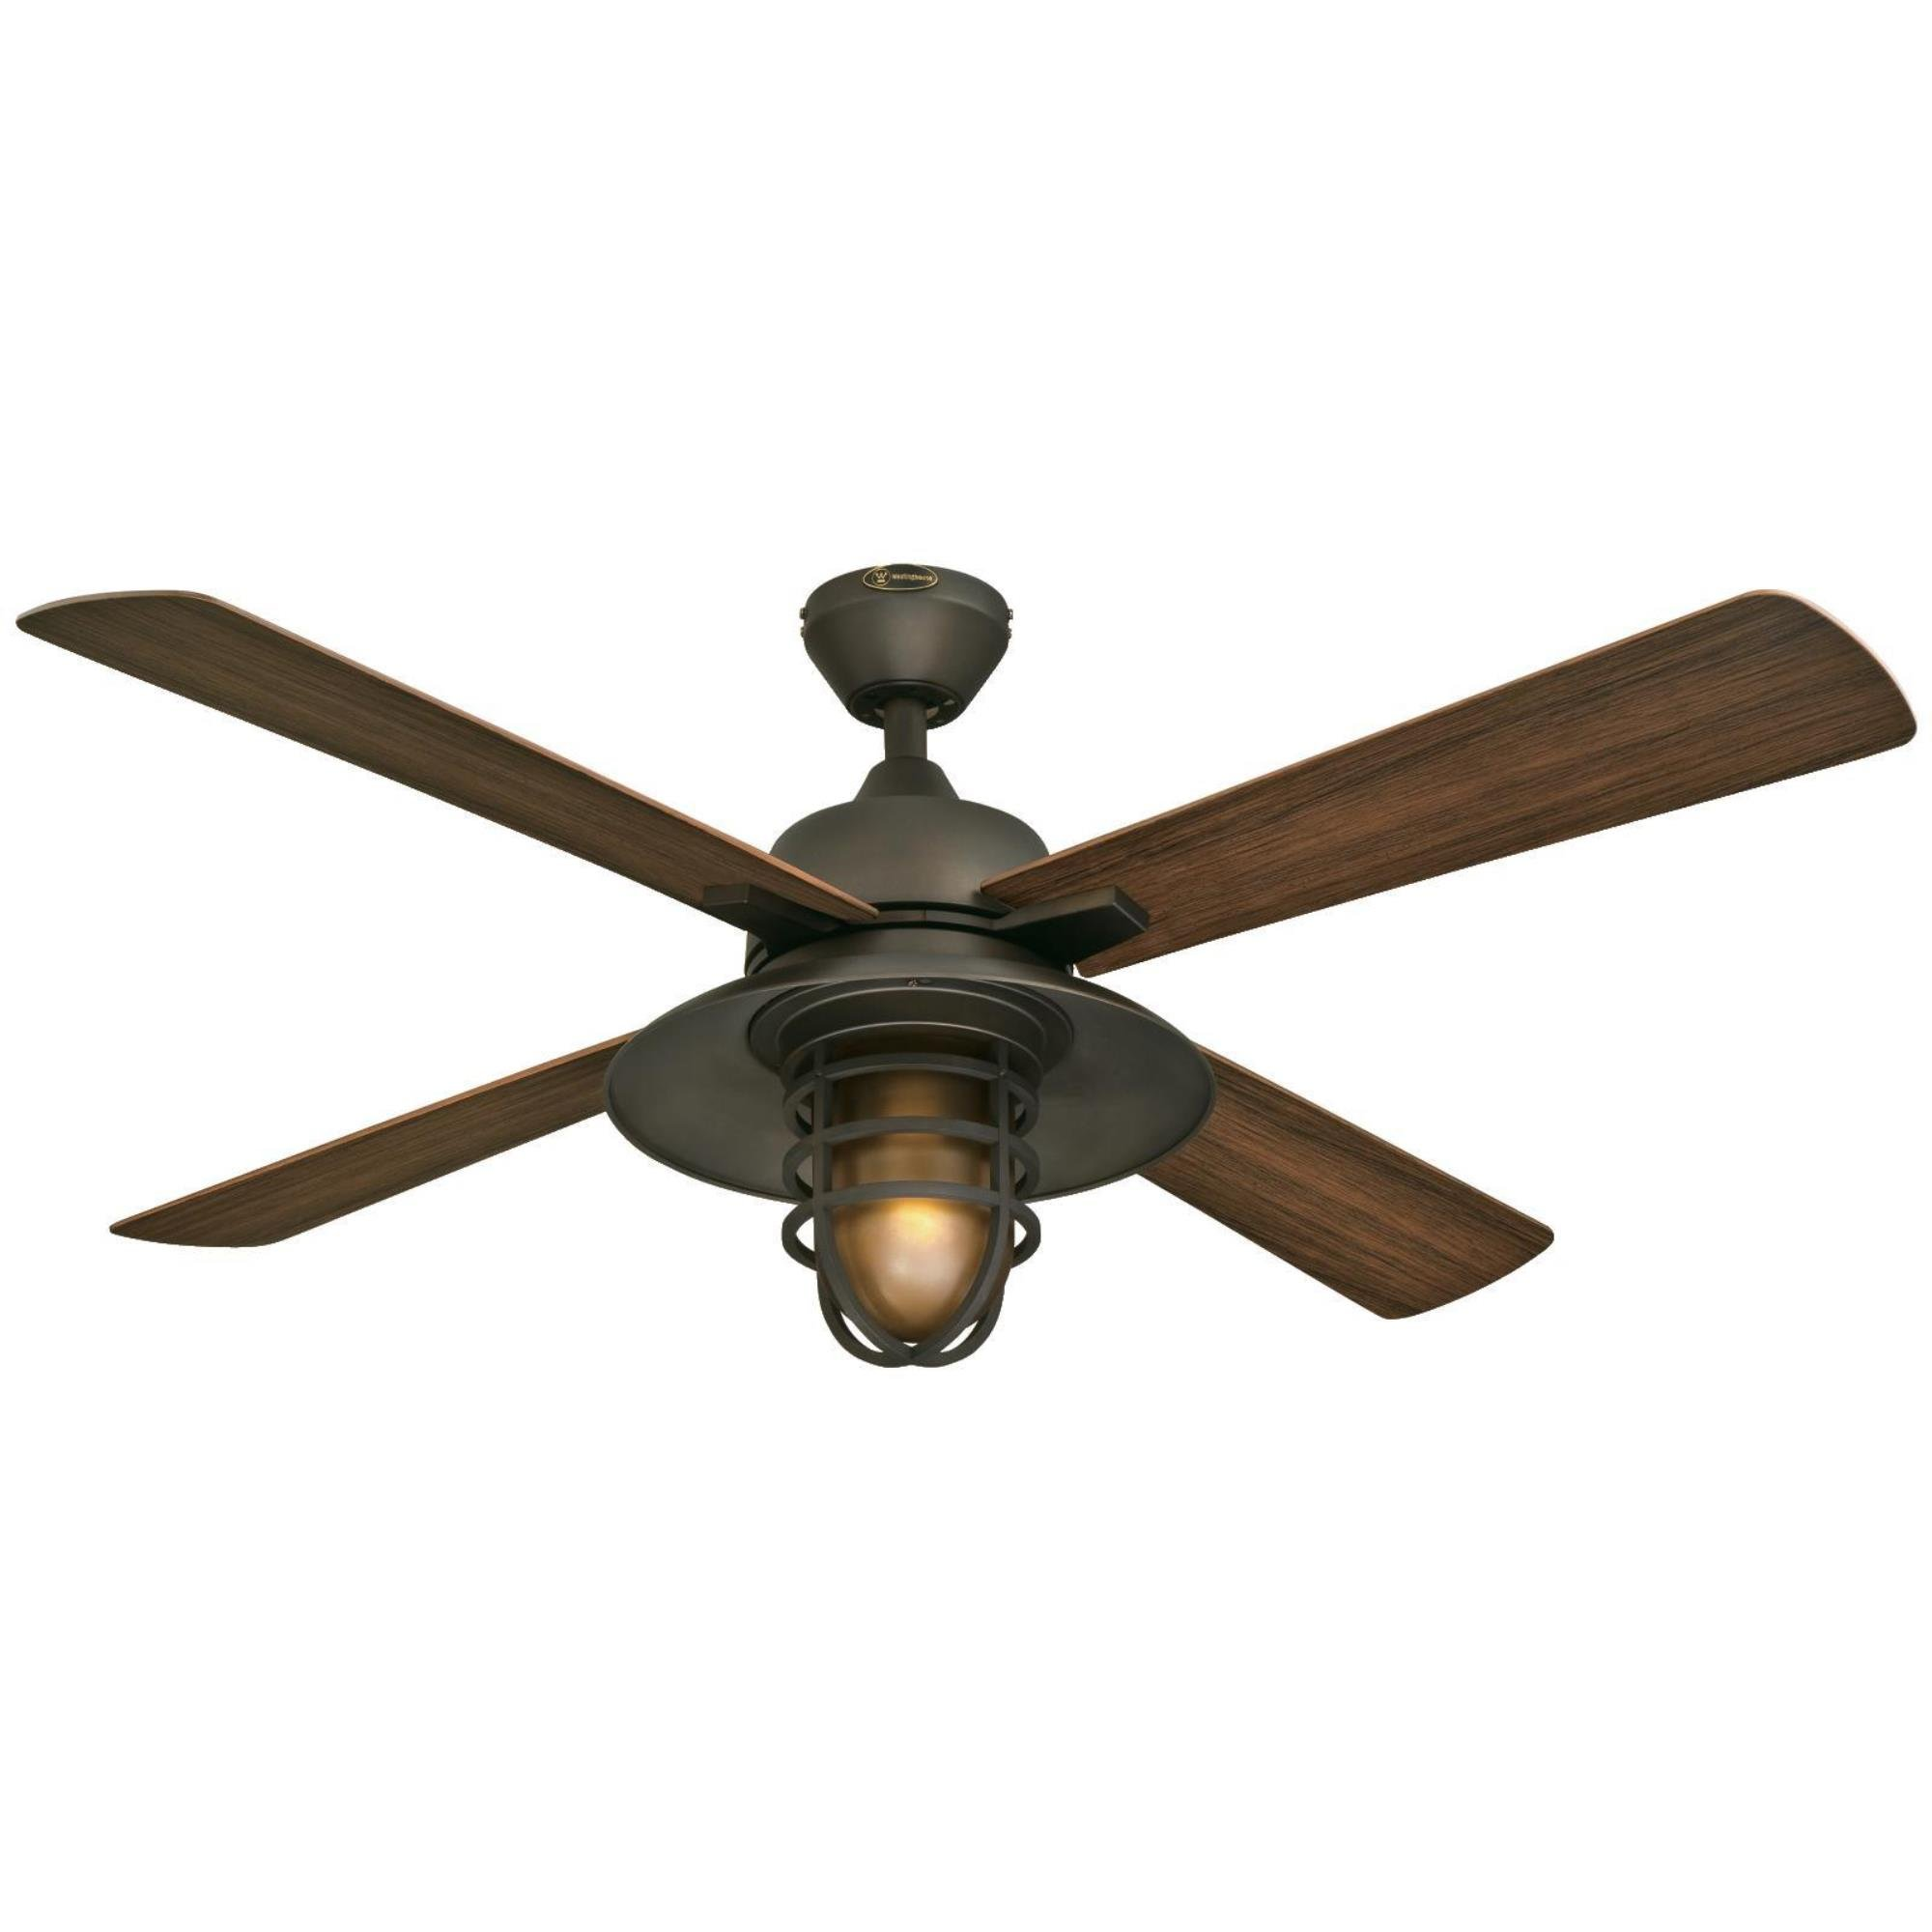 Westinghouse 7204300 Great Falls One-Light 52'' ABS Resin Four-Blade Indoor/Outdoor Ceiling Fan, Oil Rubbed Bronze